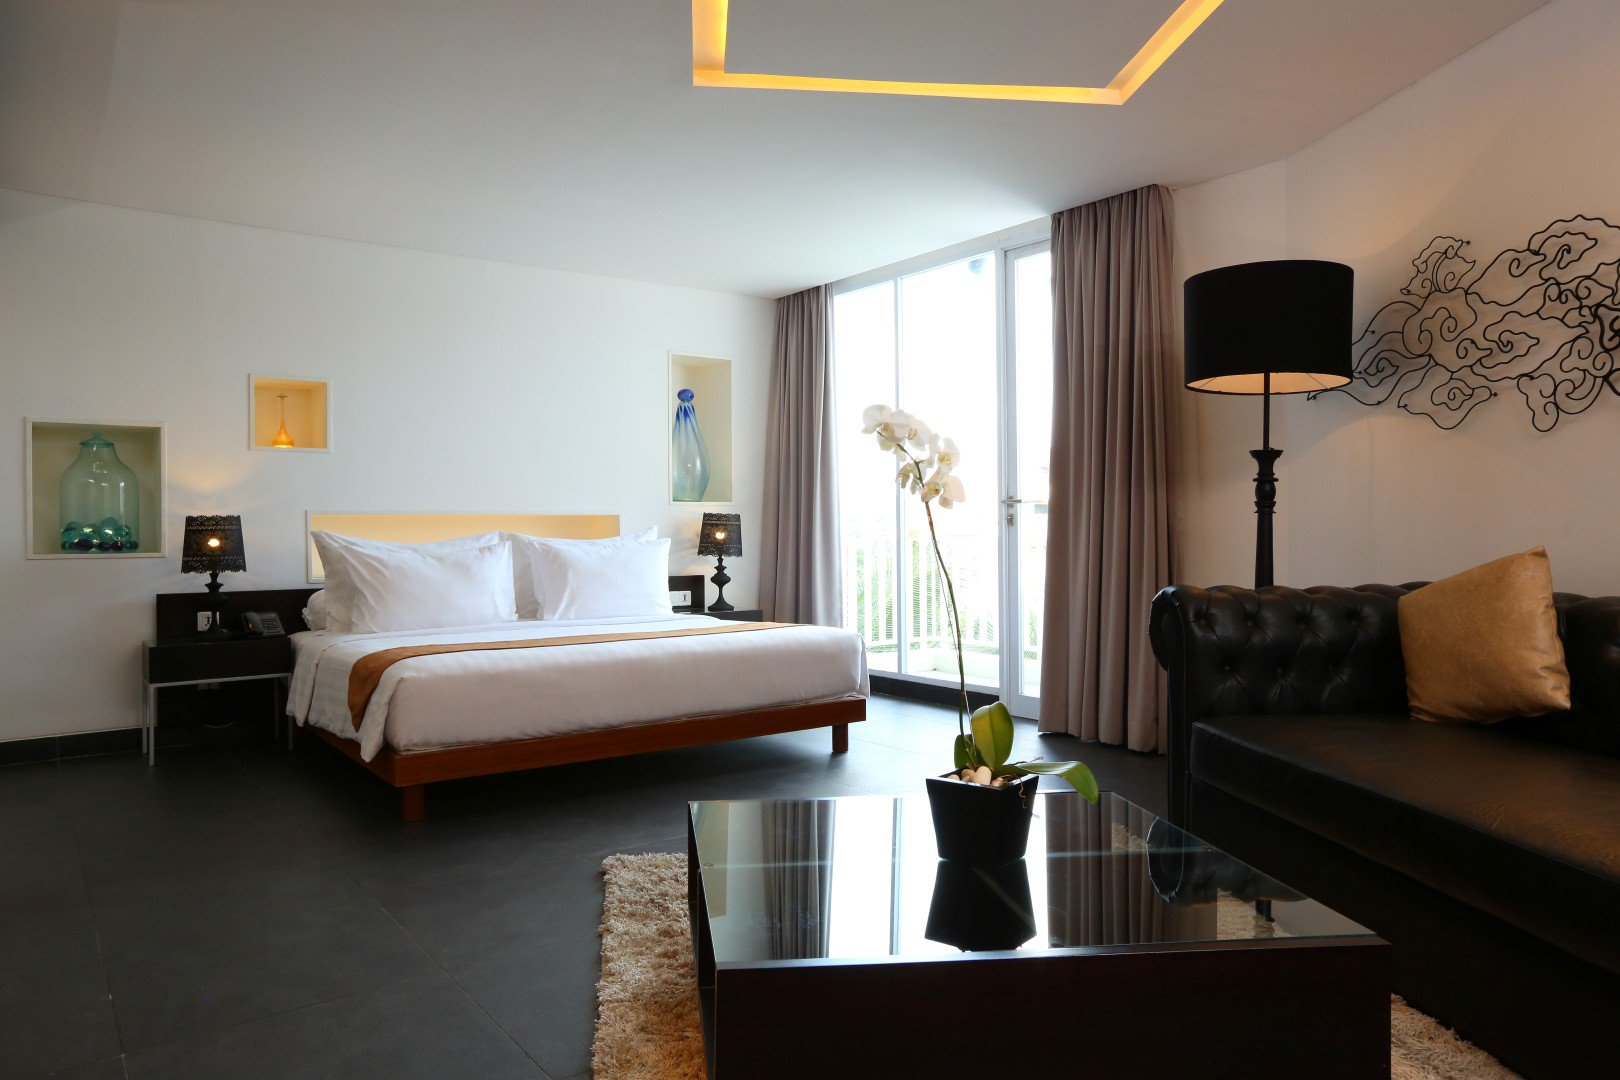 Fontana Hotel Bali On Twitter Fontana Suite Is The Largest Of All A Perfect Definition Of Luxury Island Life The Room Accommodates A Custom Made Egg Skin Bath Tub And Designer Sofa